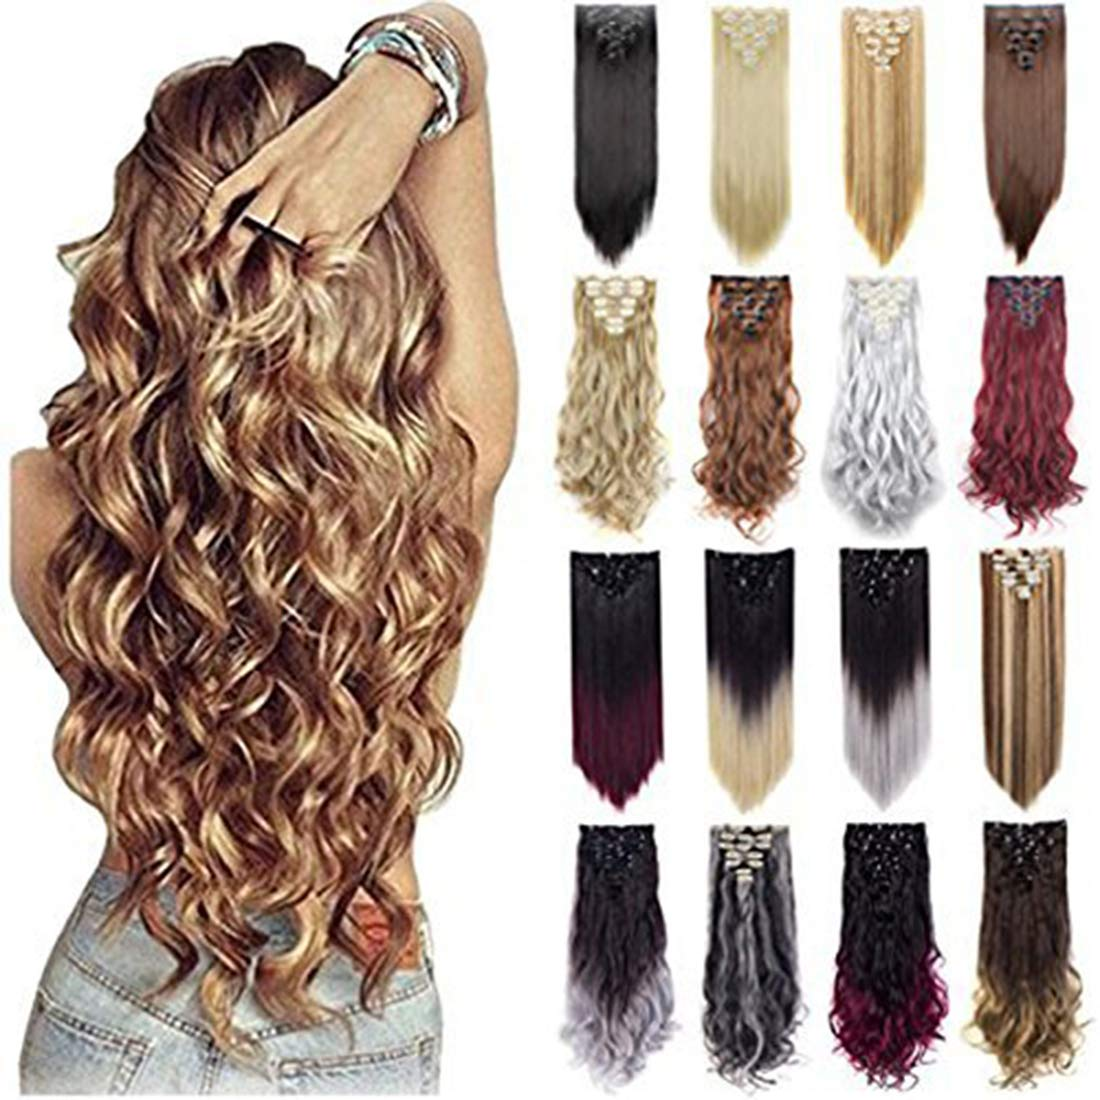 Grade 7A 160g 23-24 Inch Real Thick Double Weft Clip In Hair Extensions by FIRSTLIKE